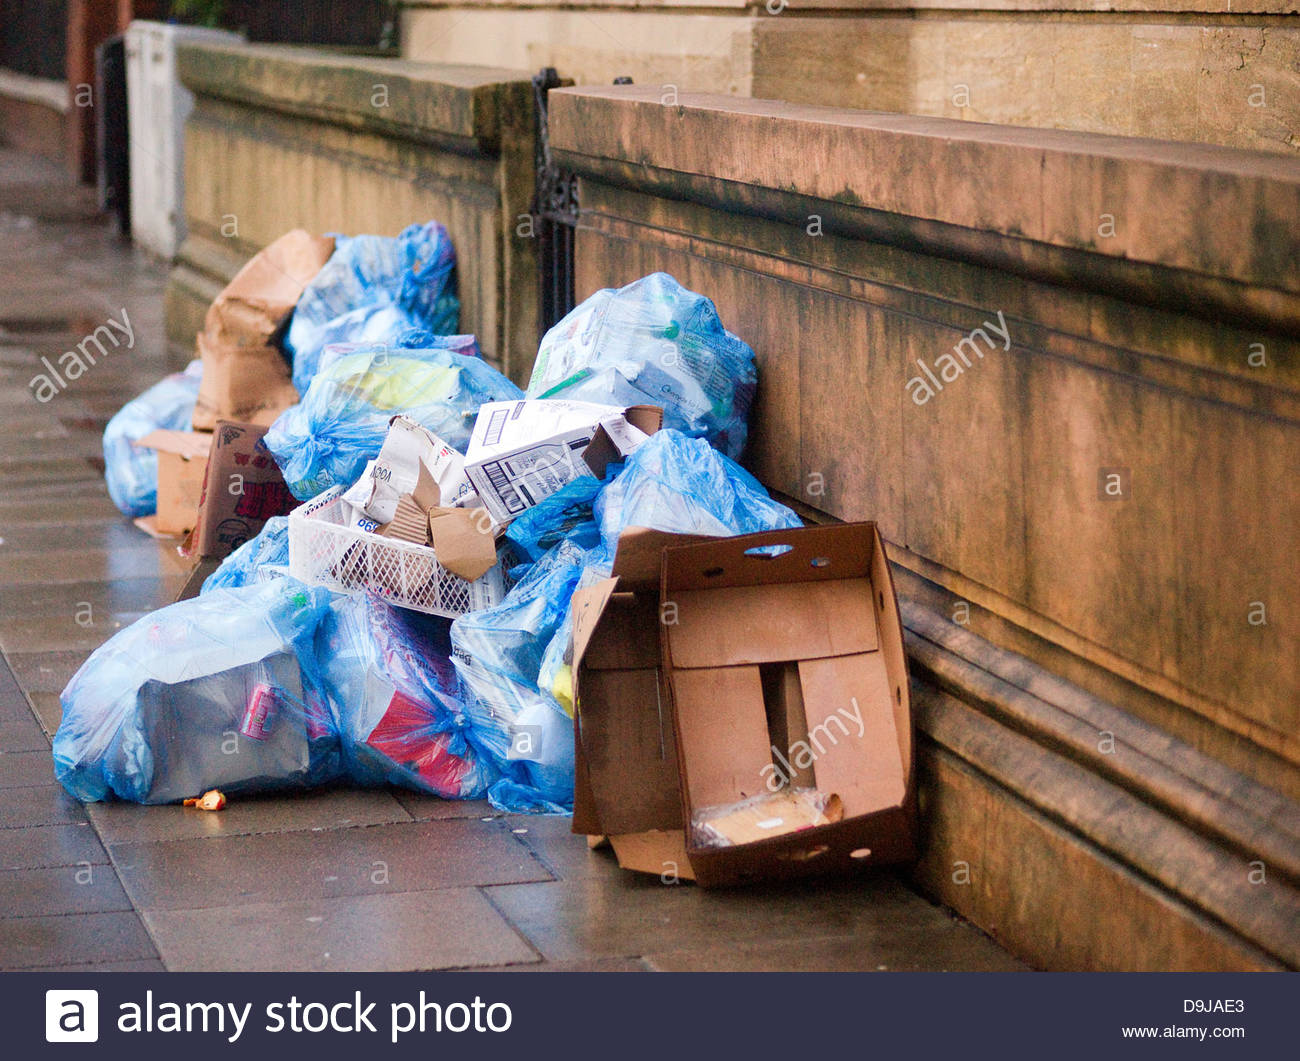 bag city cleanup close collection consumer dirty dustbin environmental garbage outdoor pollution refuse rubbish - Stock Image